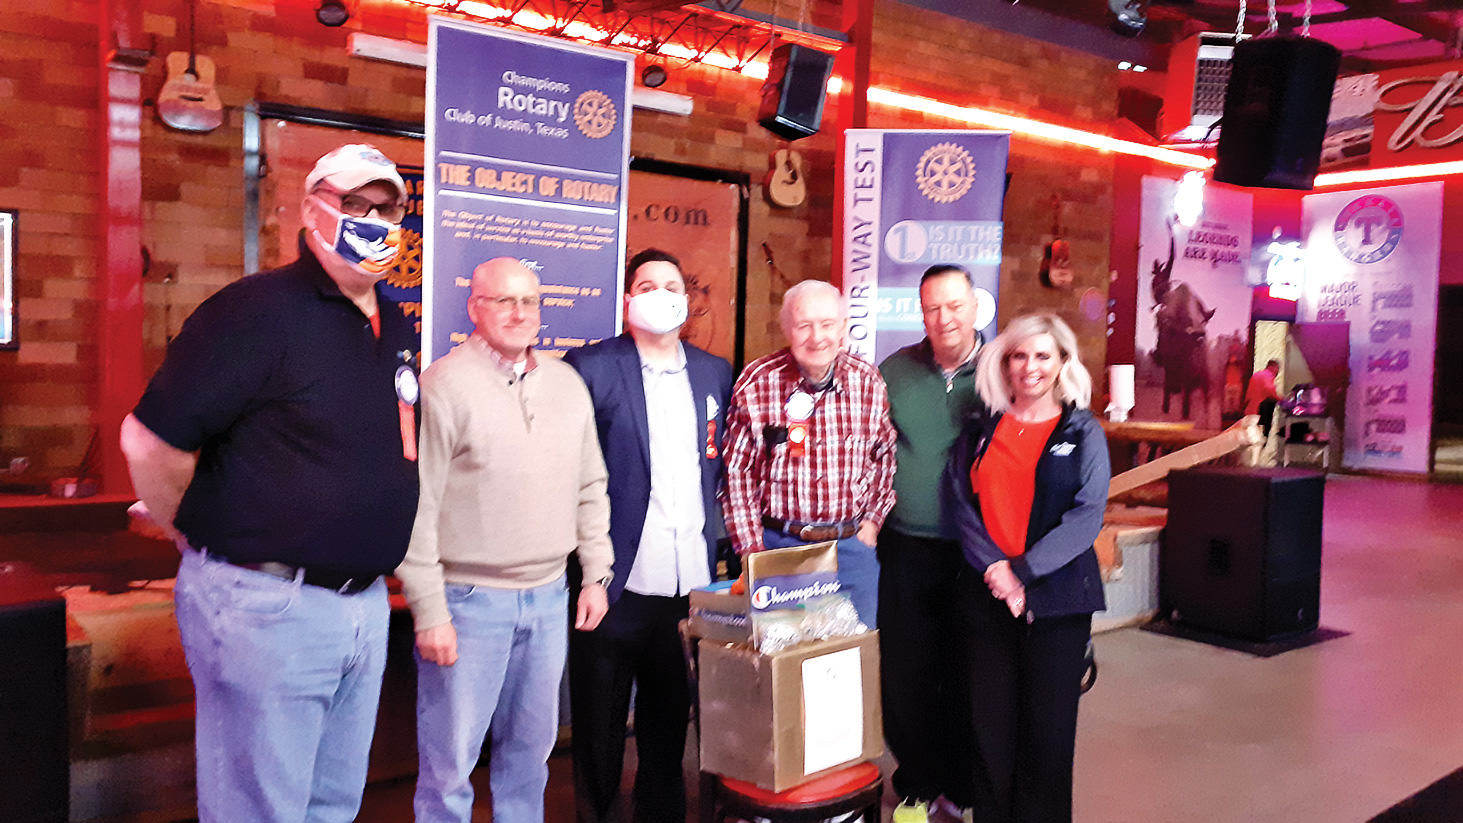 Left to right: Roger Shady; Don Fryer, first member to contribute to program; Justin Lansdowne, club president; Gary Toothaker, program sponsor; Dave Everly, program coordinator; and Jacee Kiefer, program support